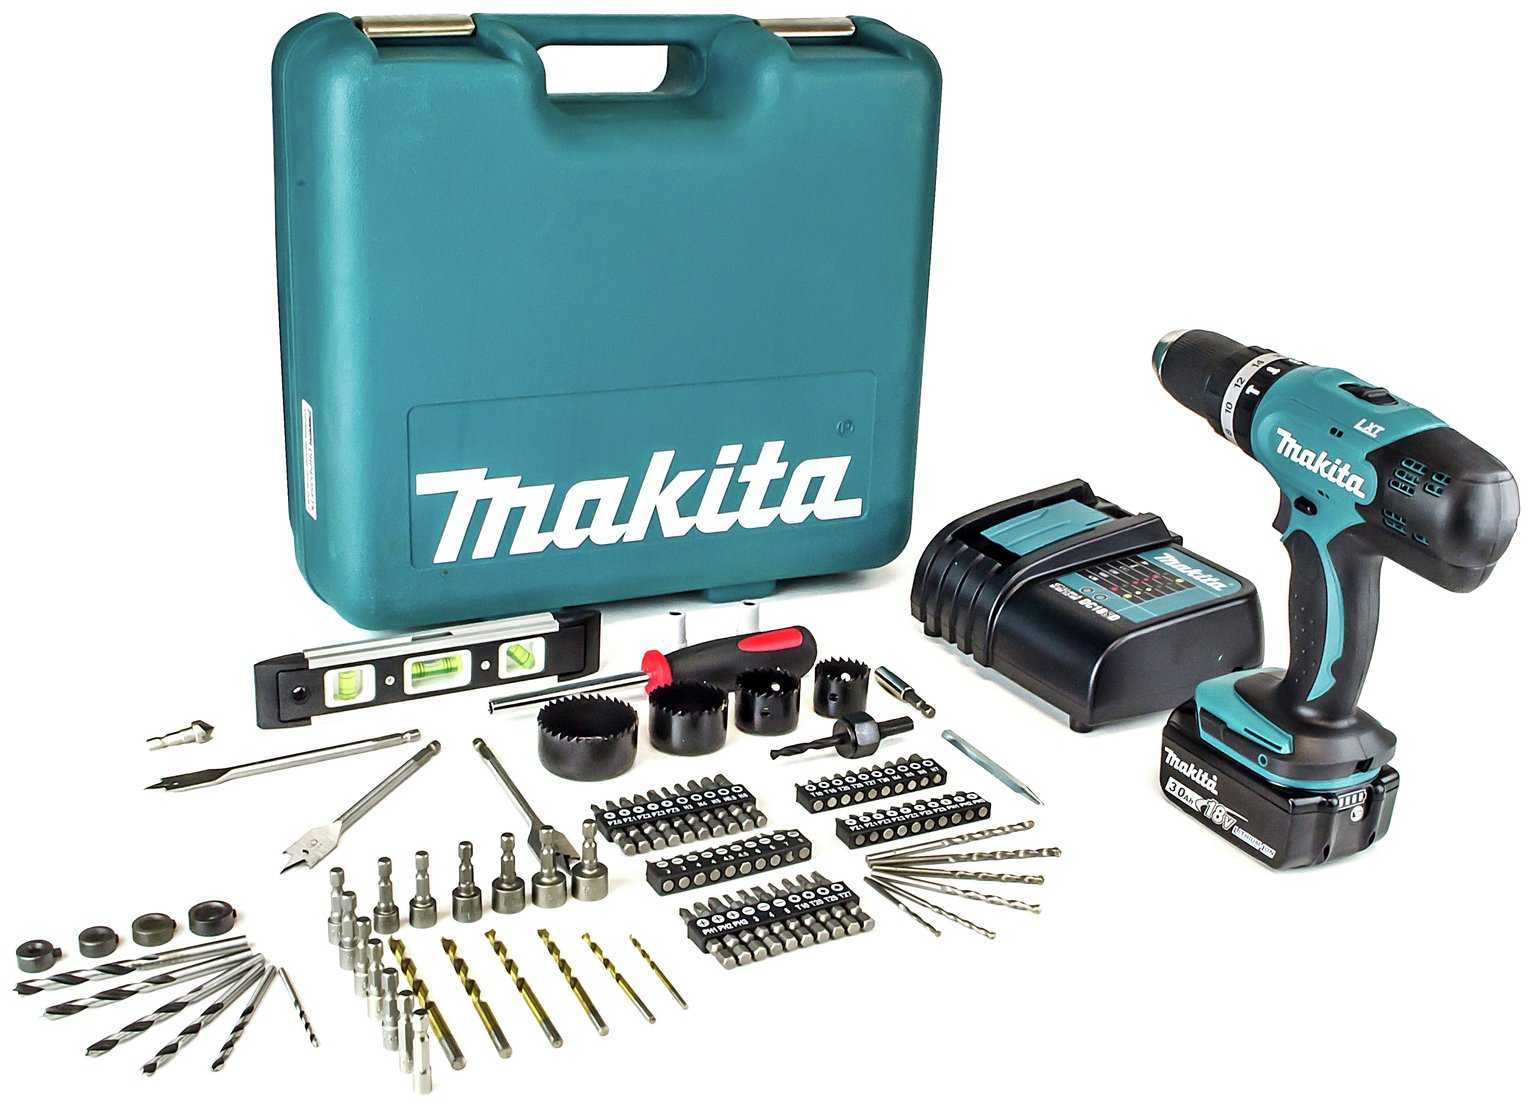 sale on makita lxt 18v 3ah cordless combi drill with 101 accessories makita 0088381826921. Black Bedroom Furniture Sets. Home Design Ideas